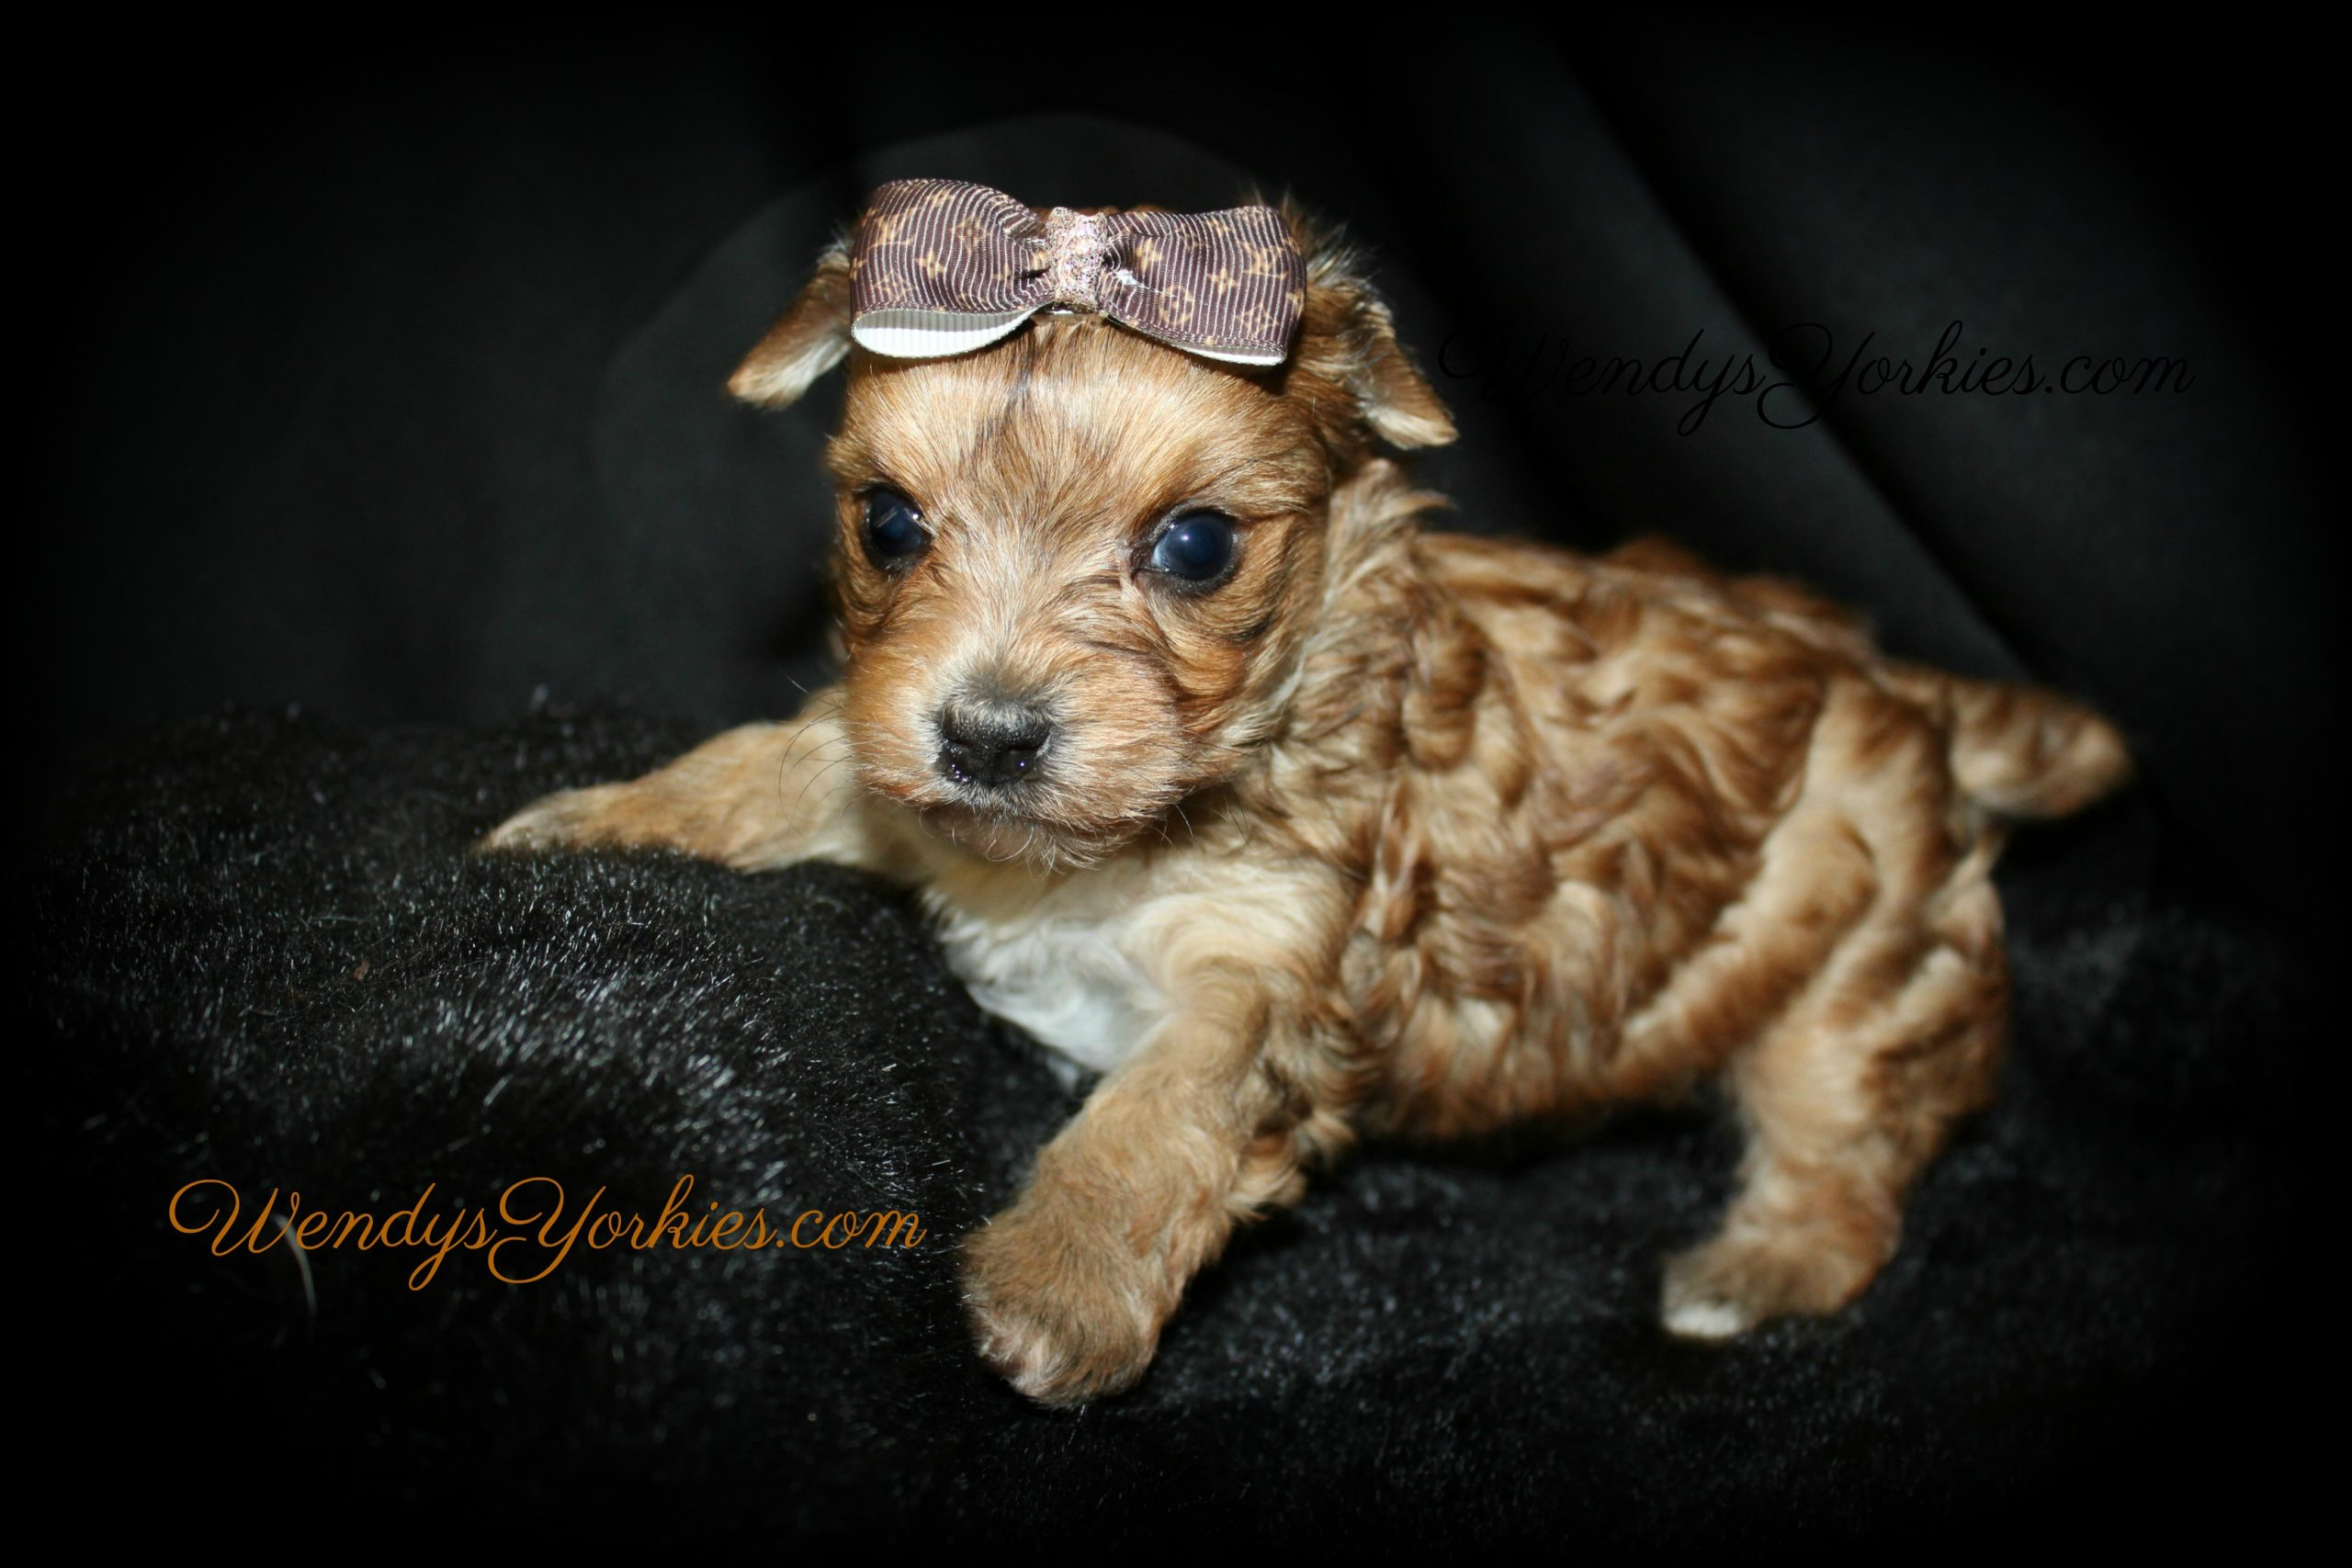 Exoctic Yorkie puppy for sale, Love bug m2, WendysYorkies.com